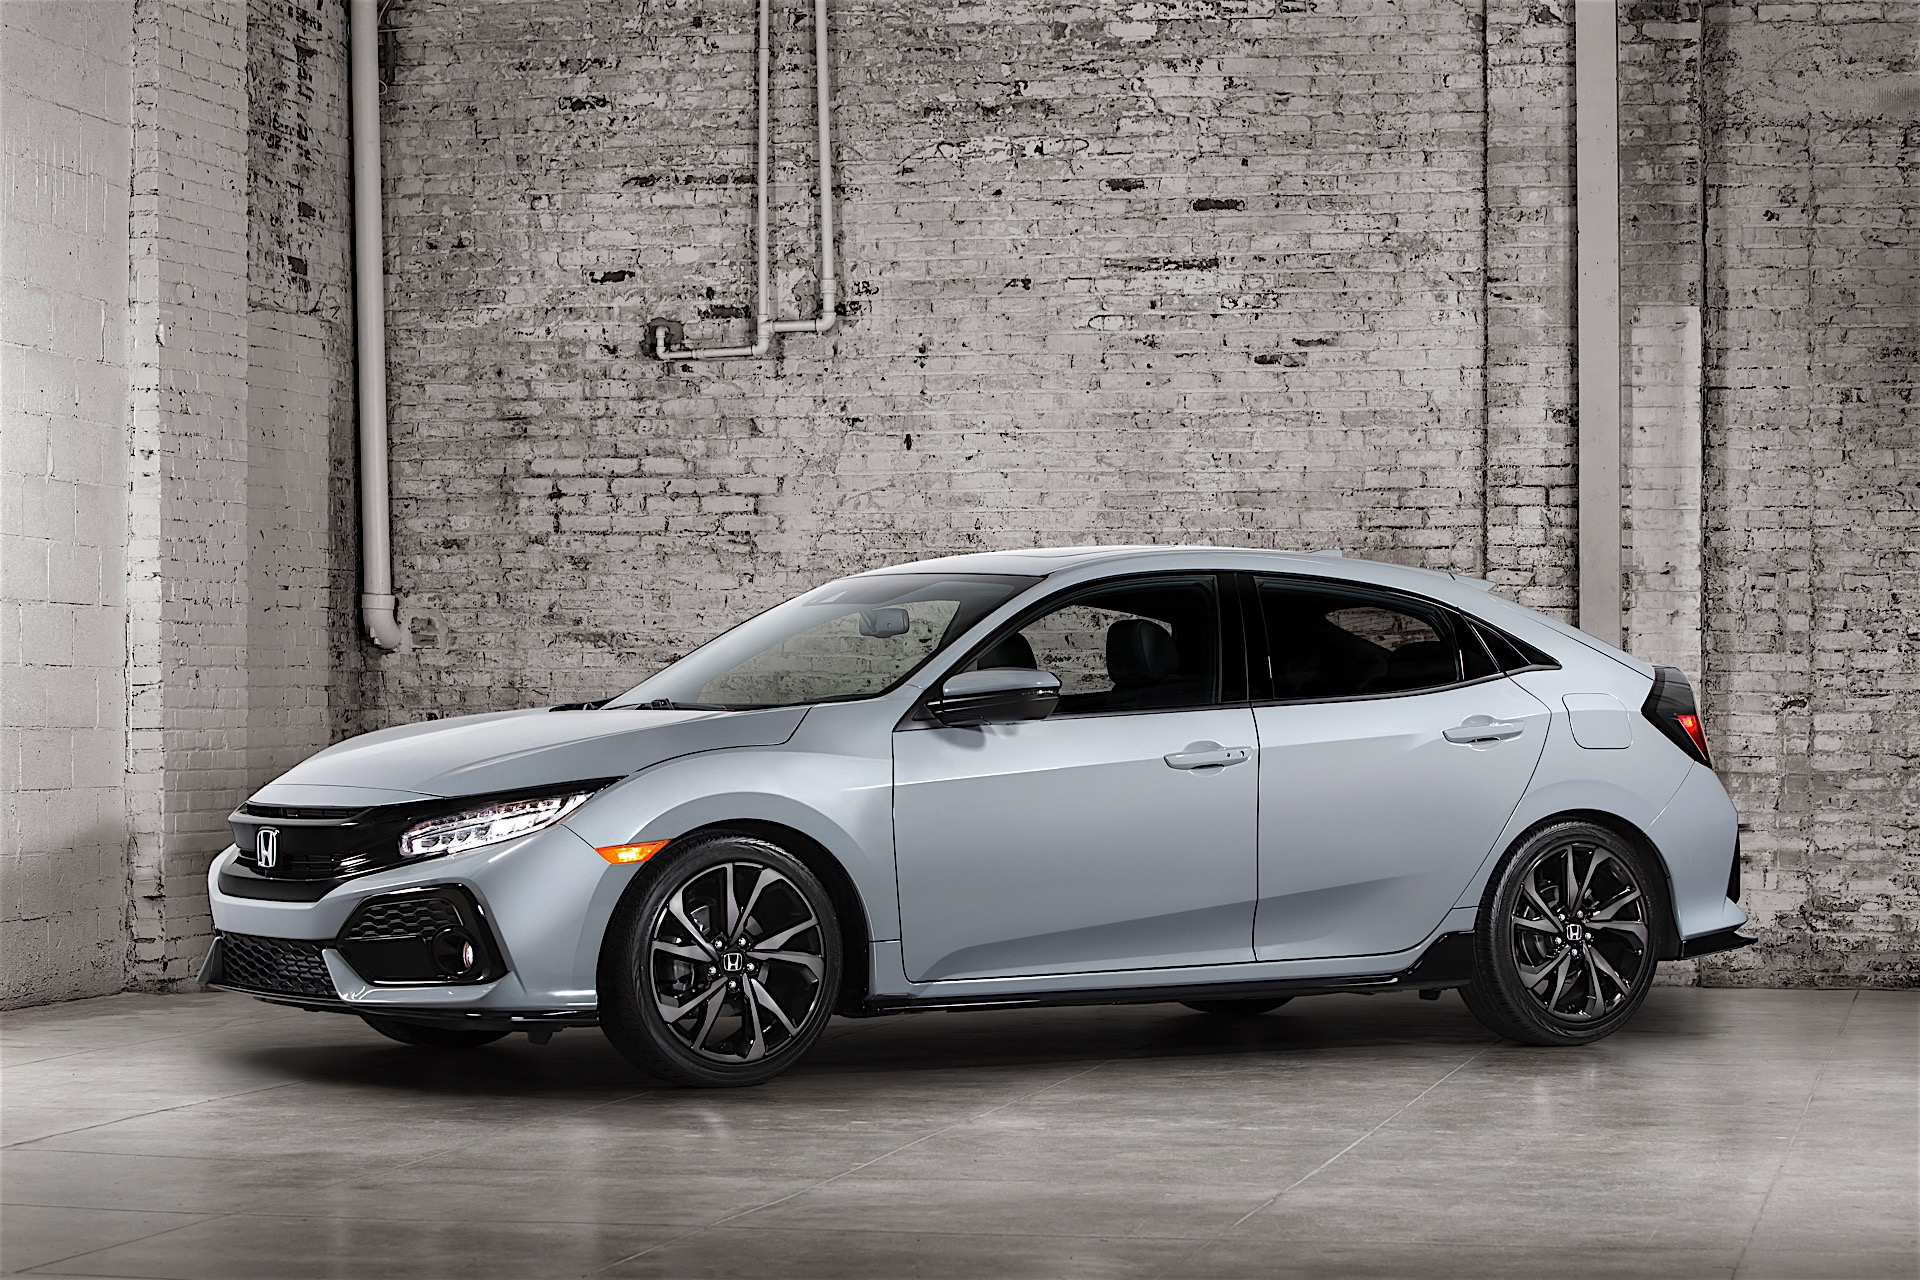 honda reveals all new 2017 civic x hatchback available this fall in the usa autoevolution. Black Bedroom Furniture Sets. Home Design Ideas